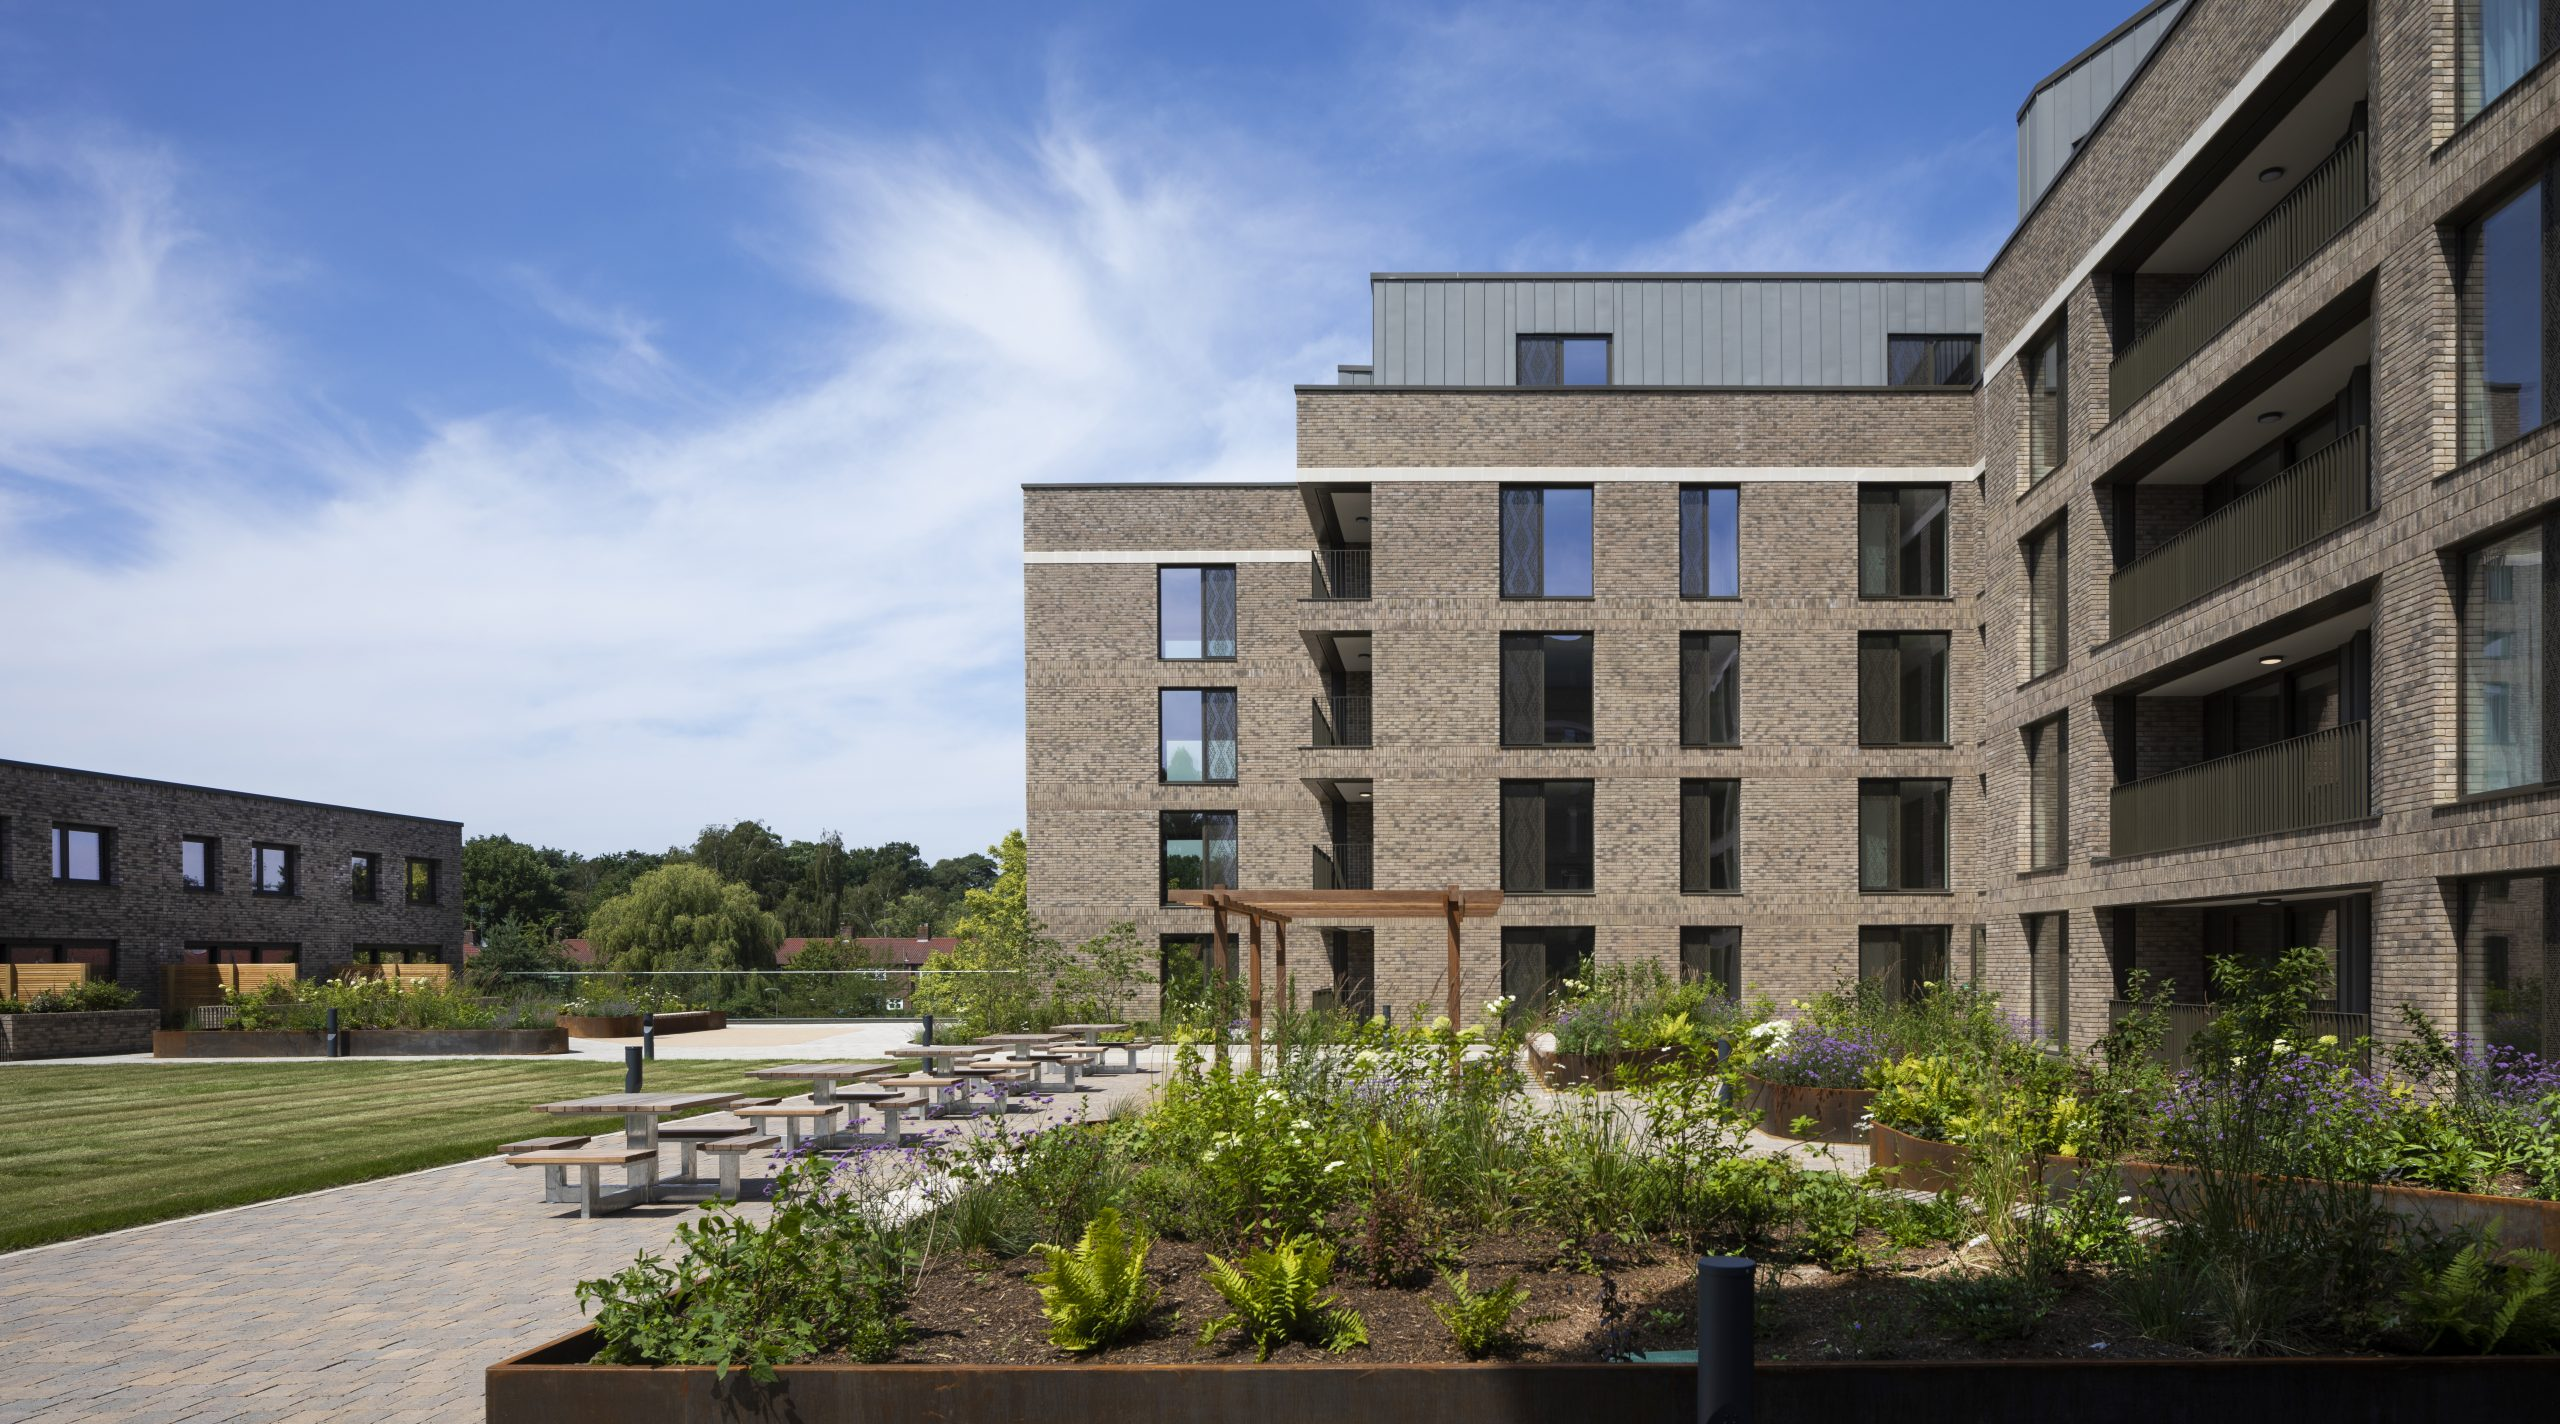 First phase of £350m regeneration project in Woking completes